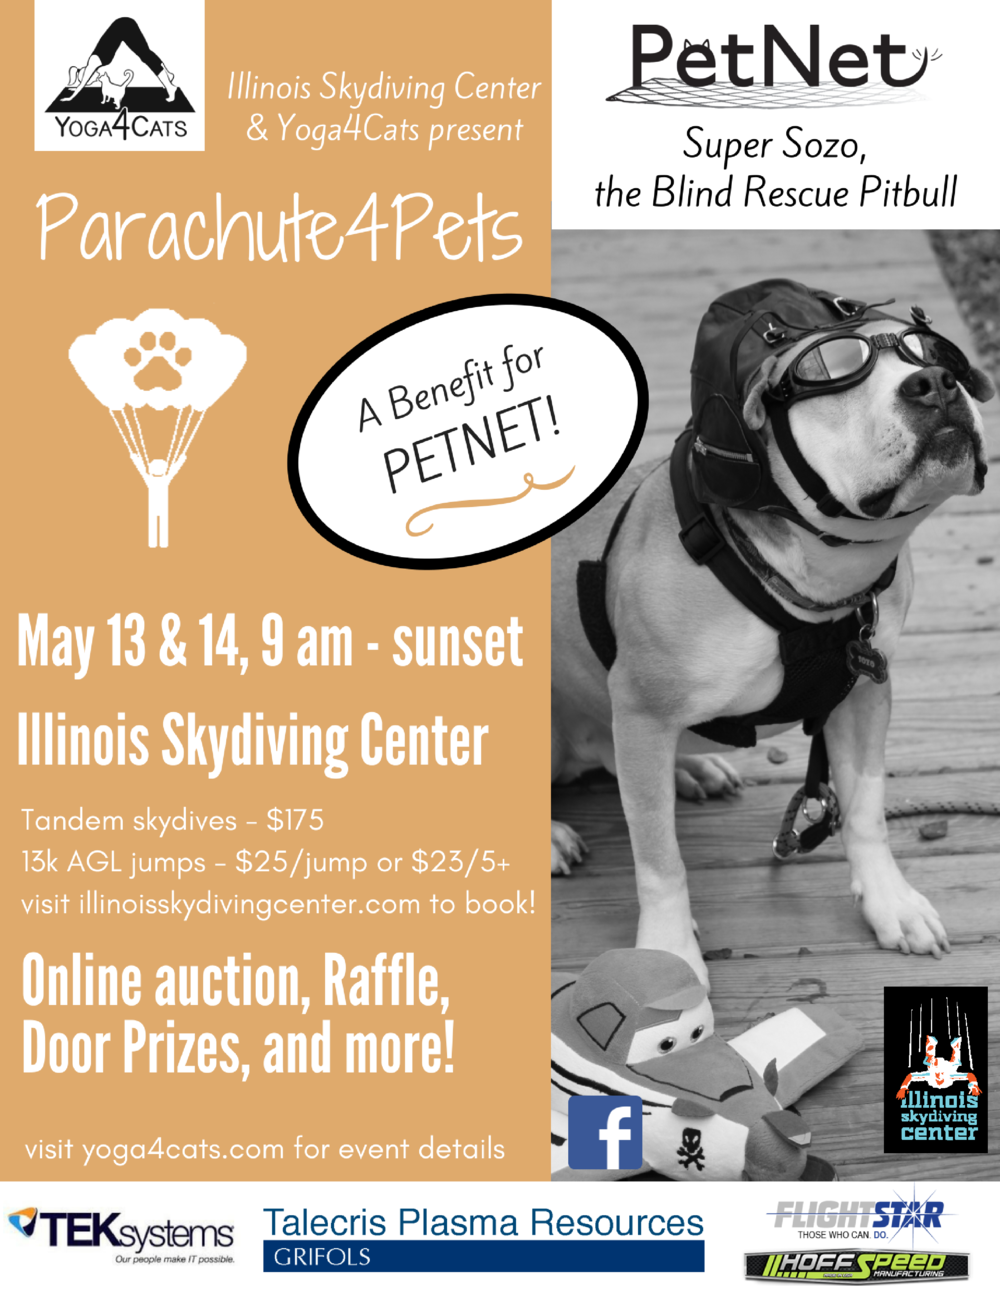 Parachute4Pets Champaign IL Yoga4Cats Illinois Skydiving Center PetNet parachute pets parachuteforpets parachute for pets parachute4pets Illinois Skydiving Center PetNet cat yoga